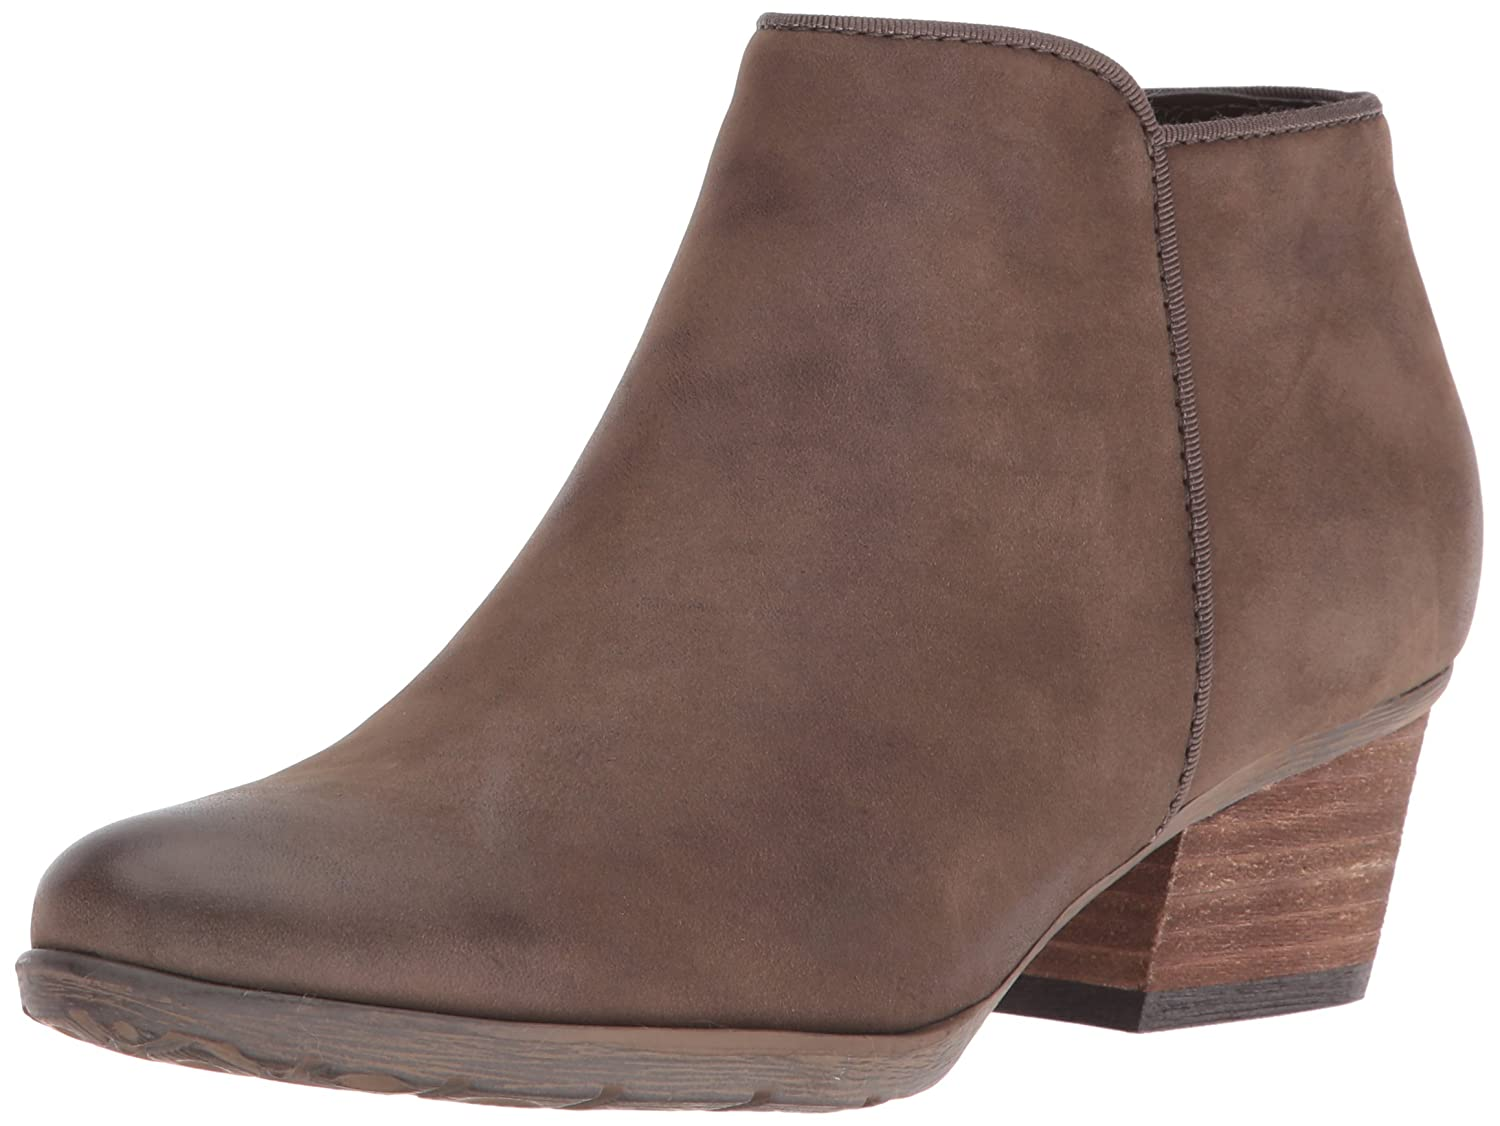 Blondo Women's Villa Waterproof Ankle Bootie B01LZB7AMS 8 B(M) US|Taupe